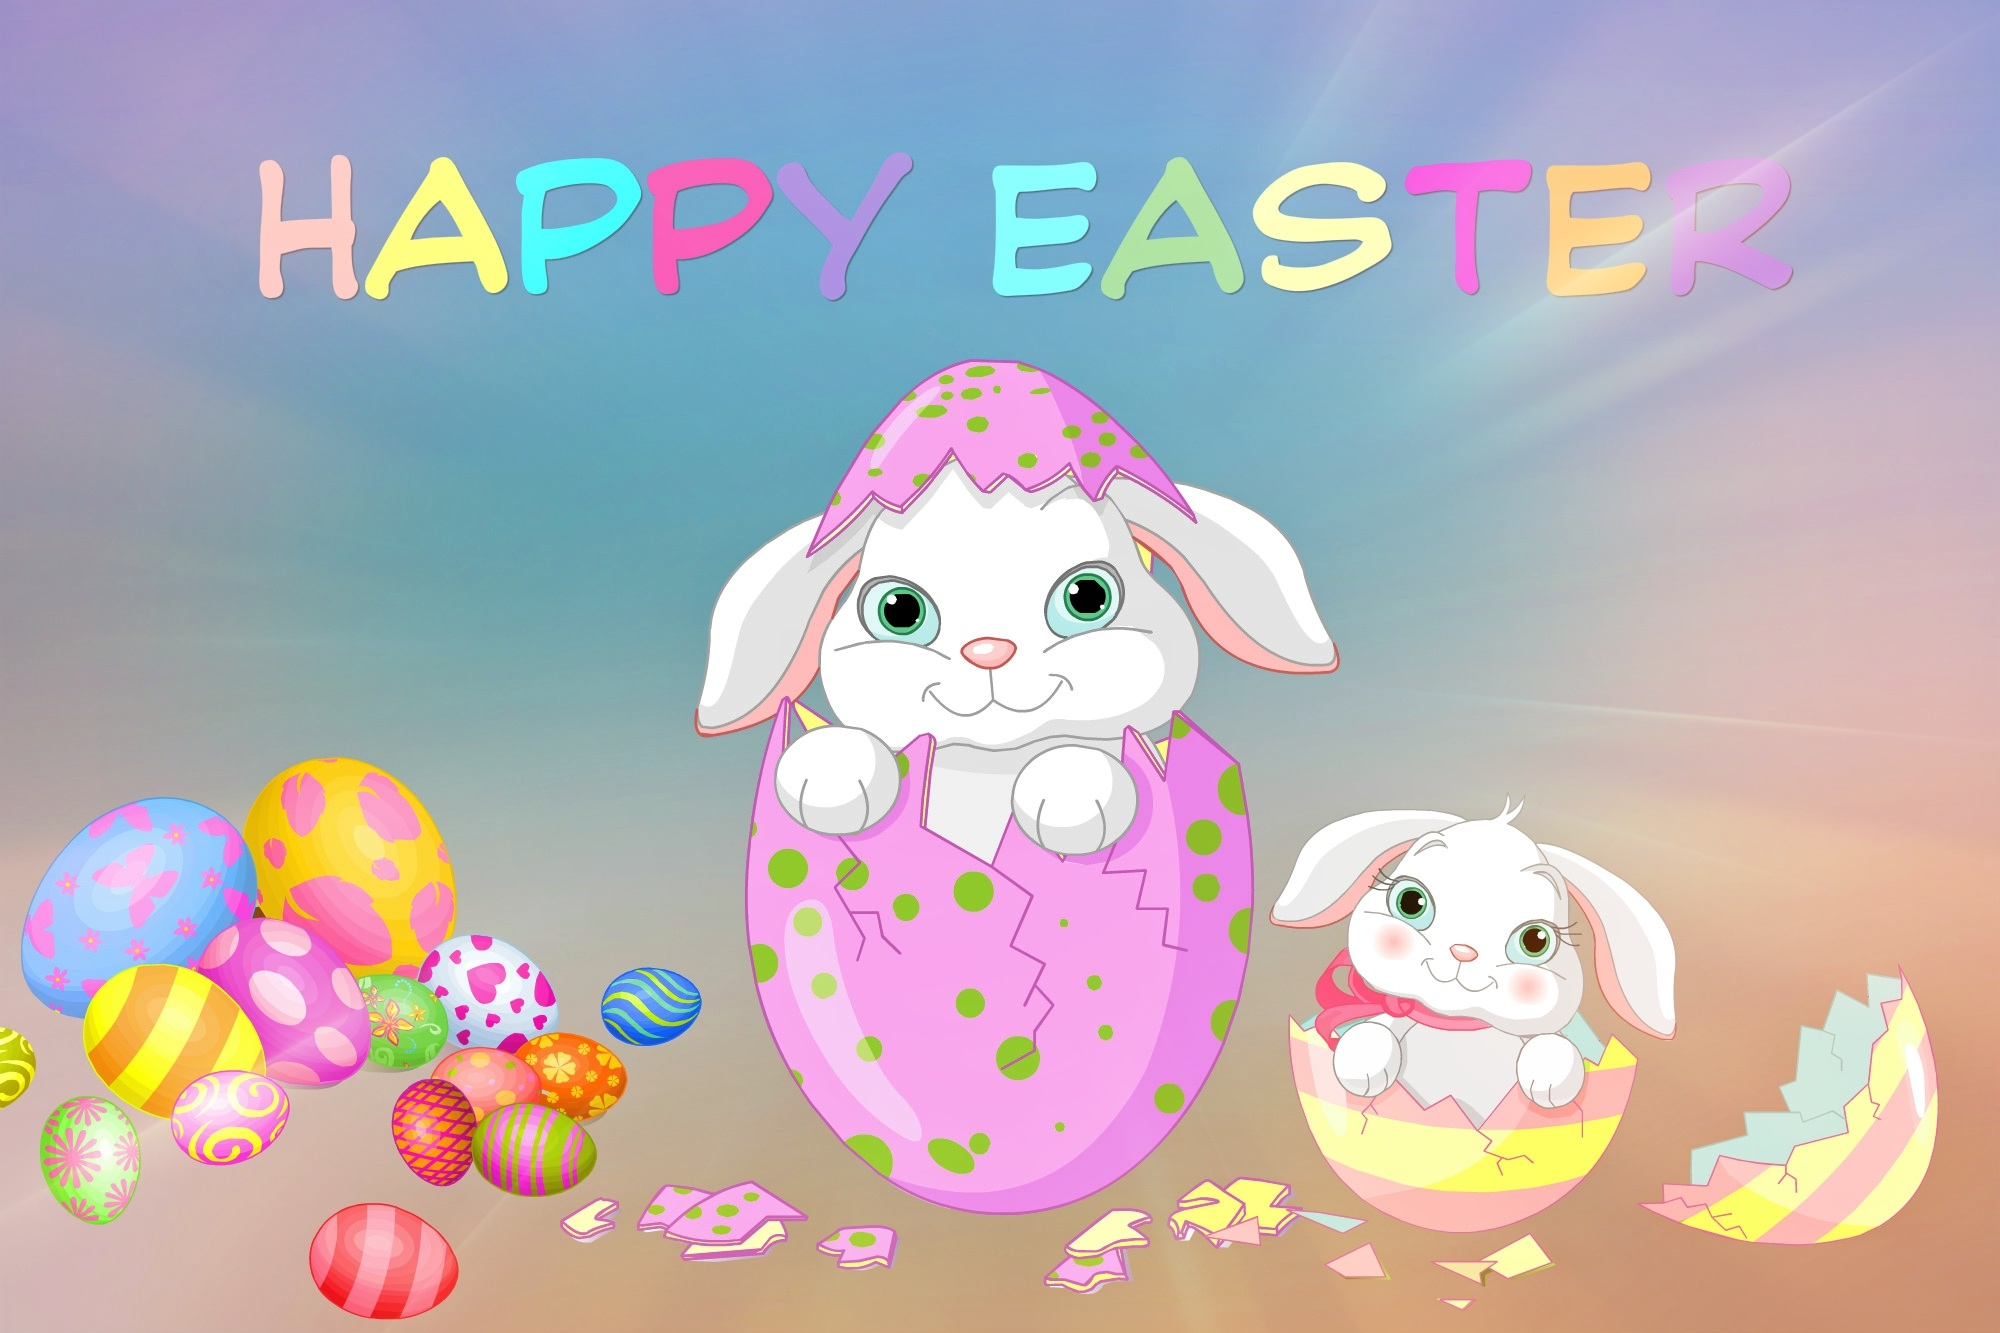 Happy Easter, Easter, Event, Happy, Season, HQ Photo